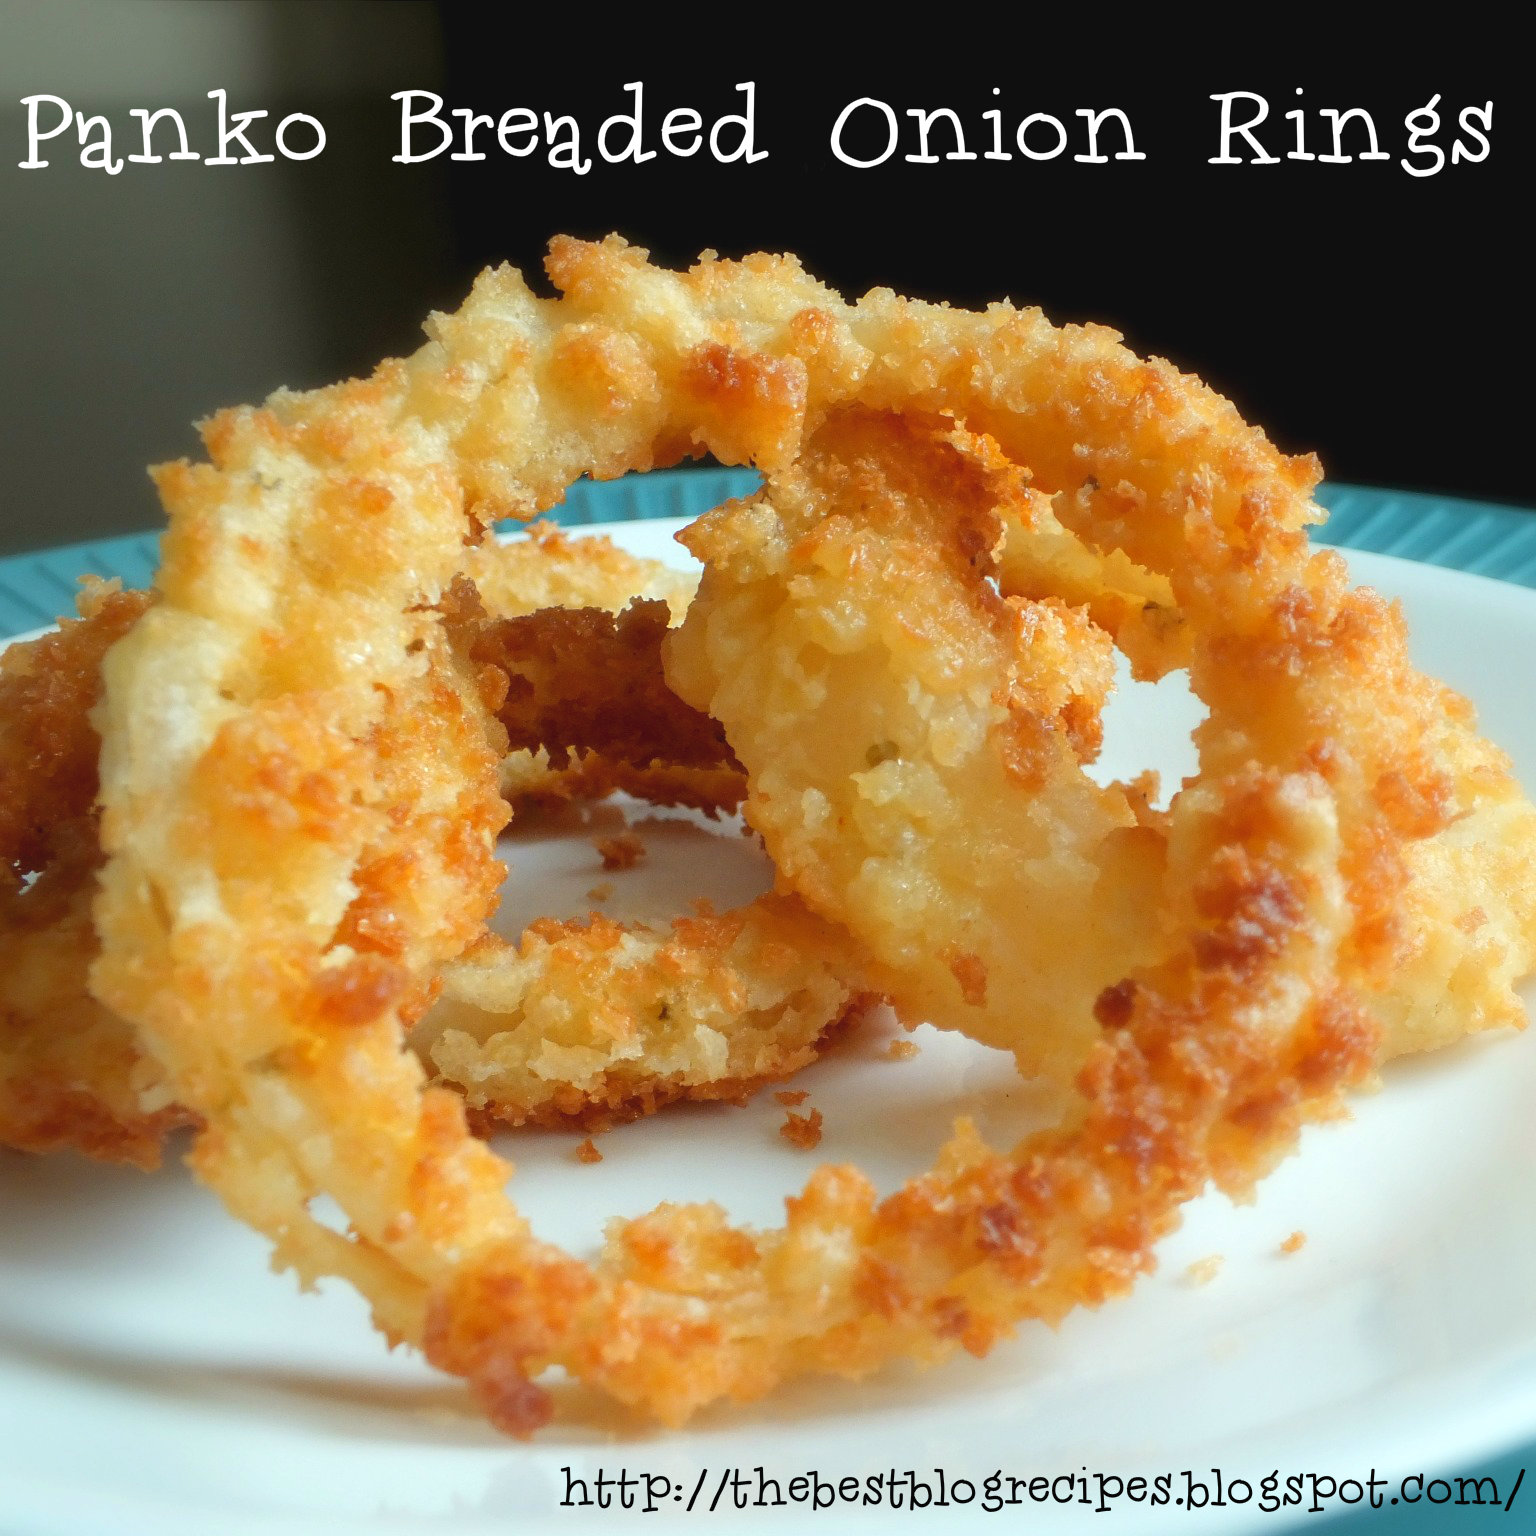 Panko Breaded Onion Rings from {The Best Blog Recipes}